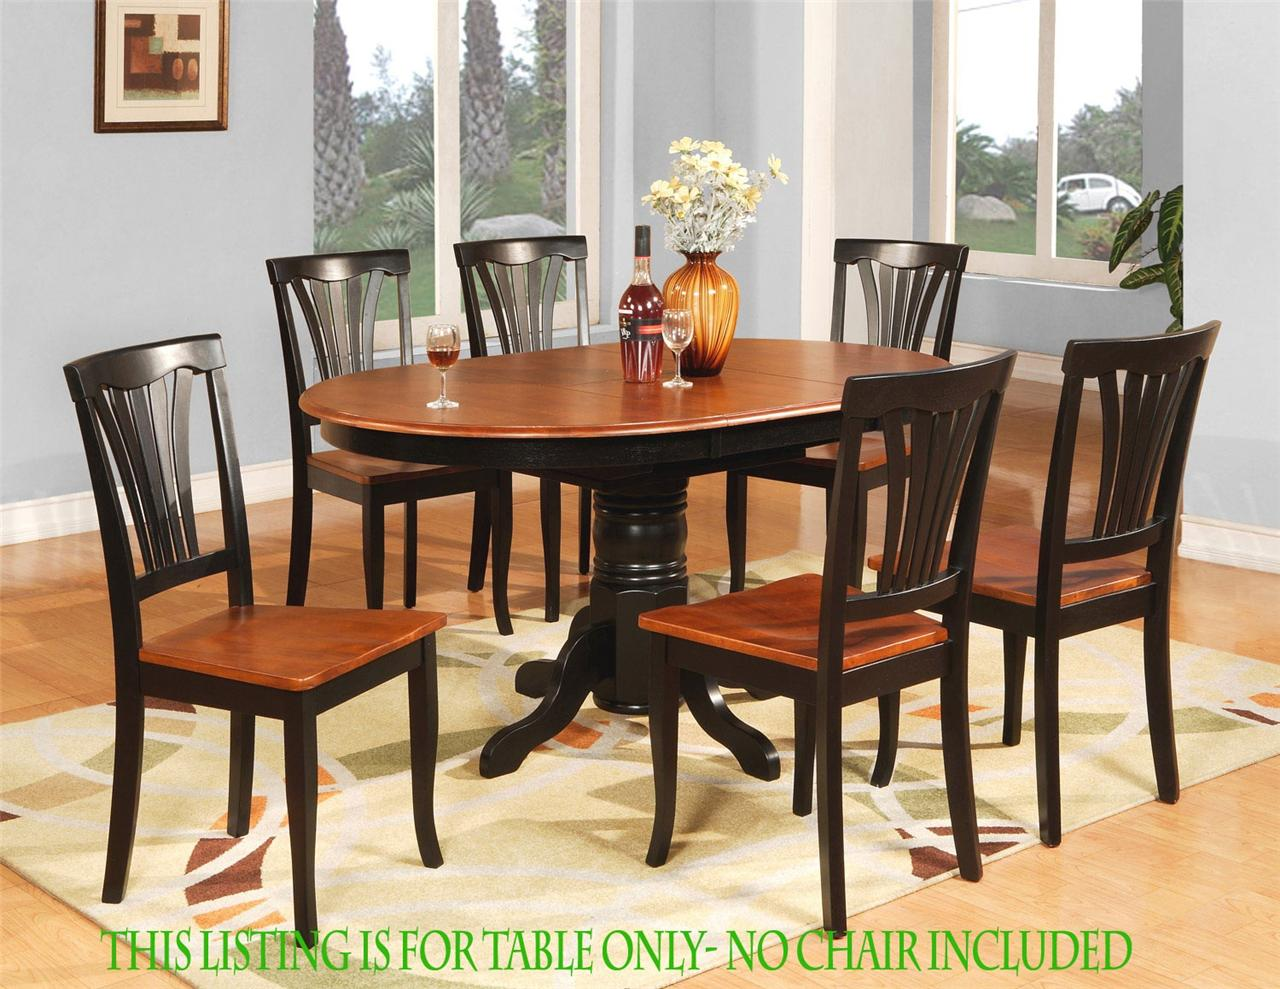 "OVAL DINETTE KITCHEN DINING ROOM TABLE ONLY 42""x 60"" WITH"